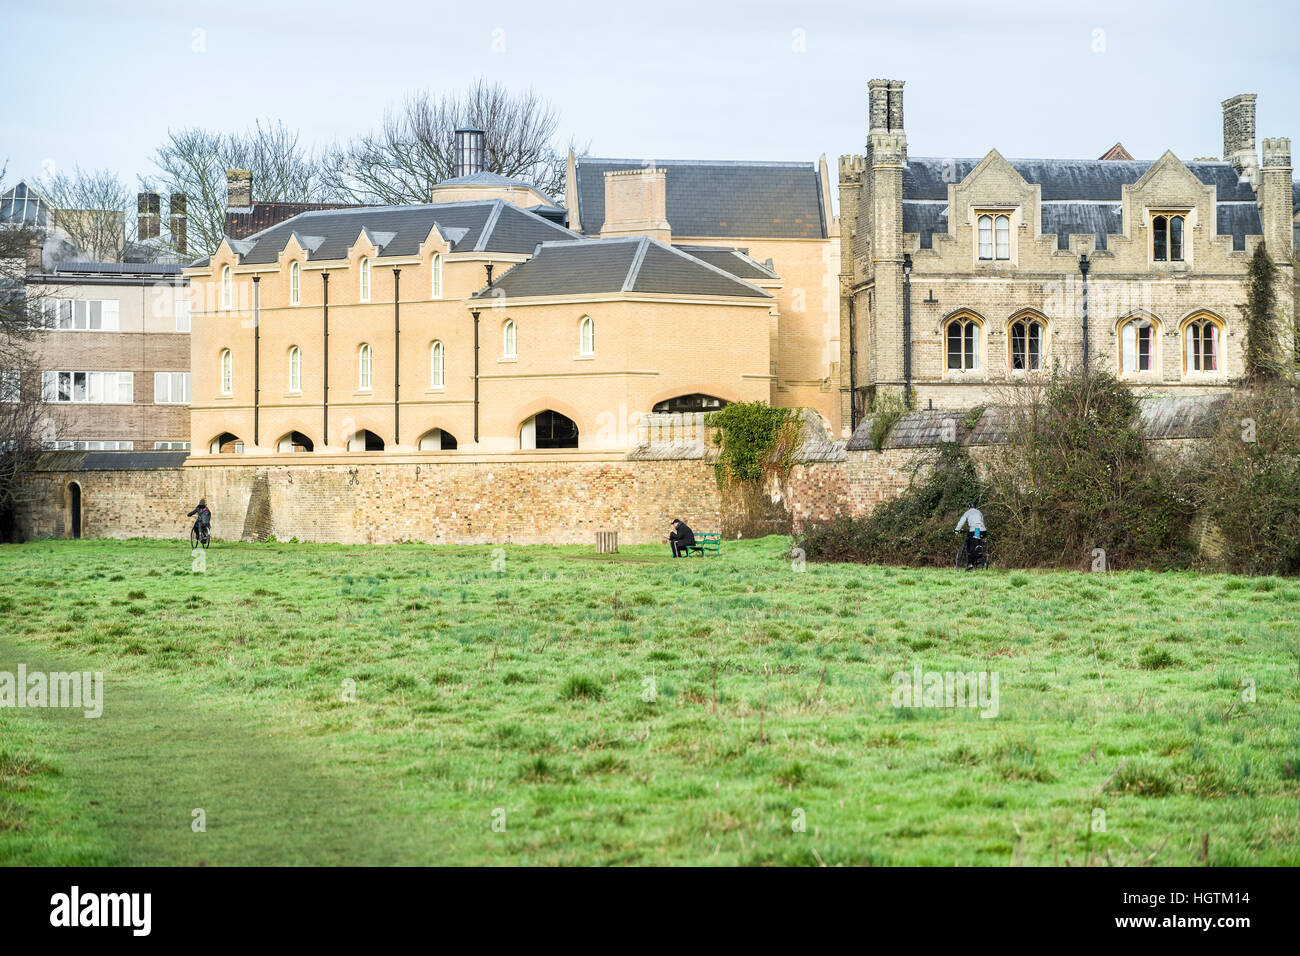 Peterhouse college, university of Cambridge, England. - Stock Image